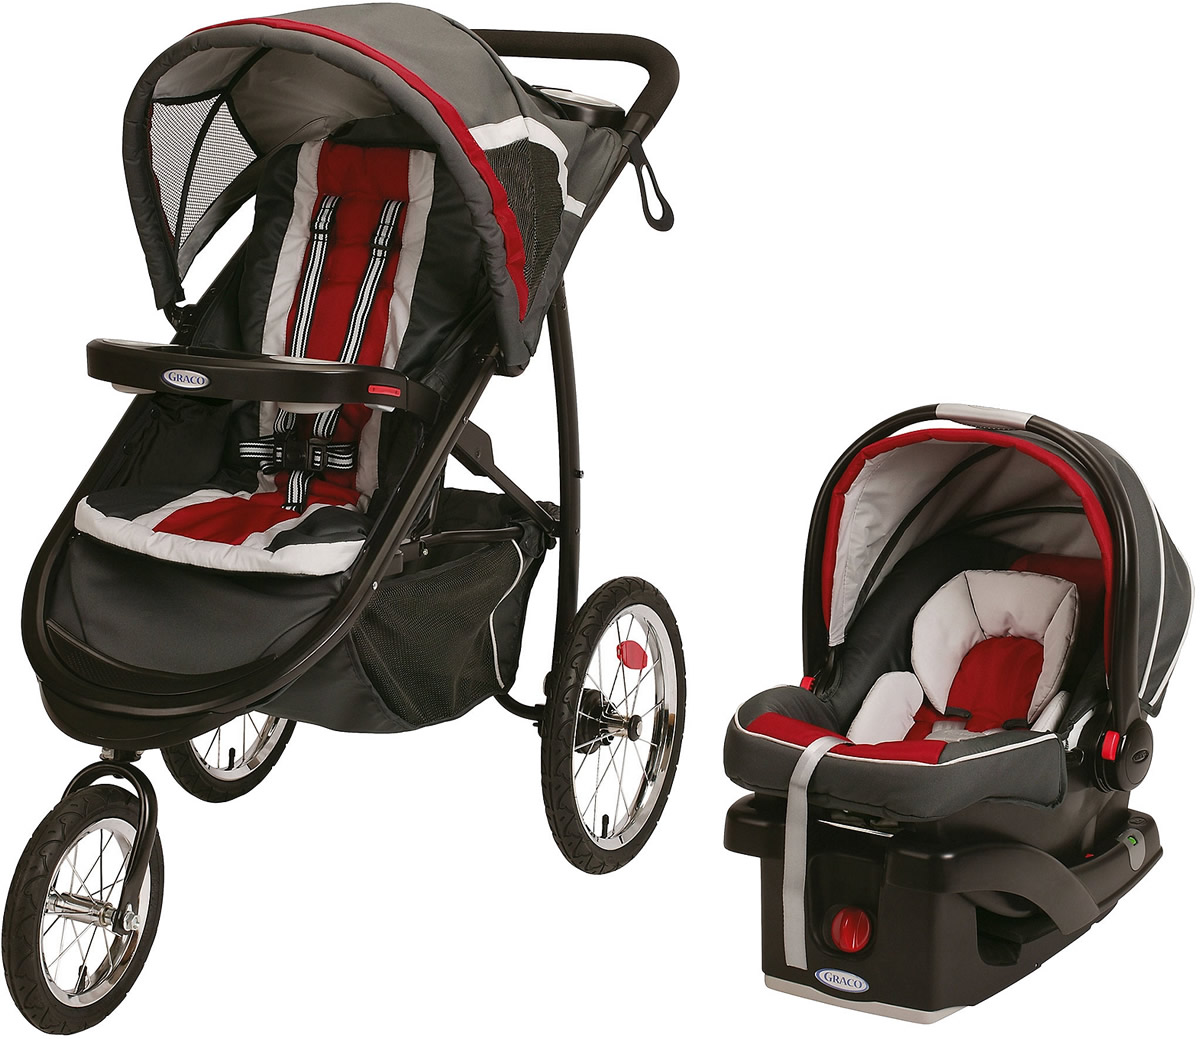 Graco FastAction Fold Jogger Click Connect Travel System Jogging Stroller, Chili Red